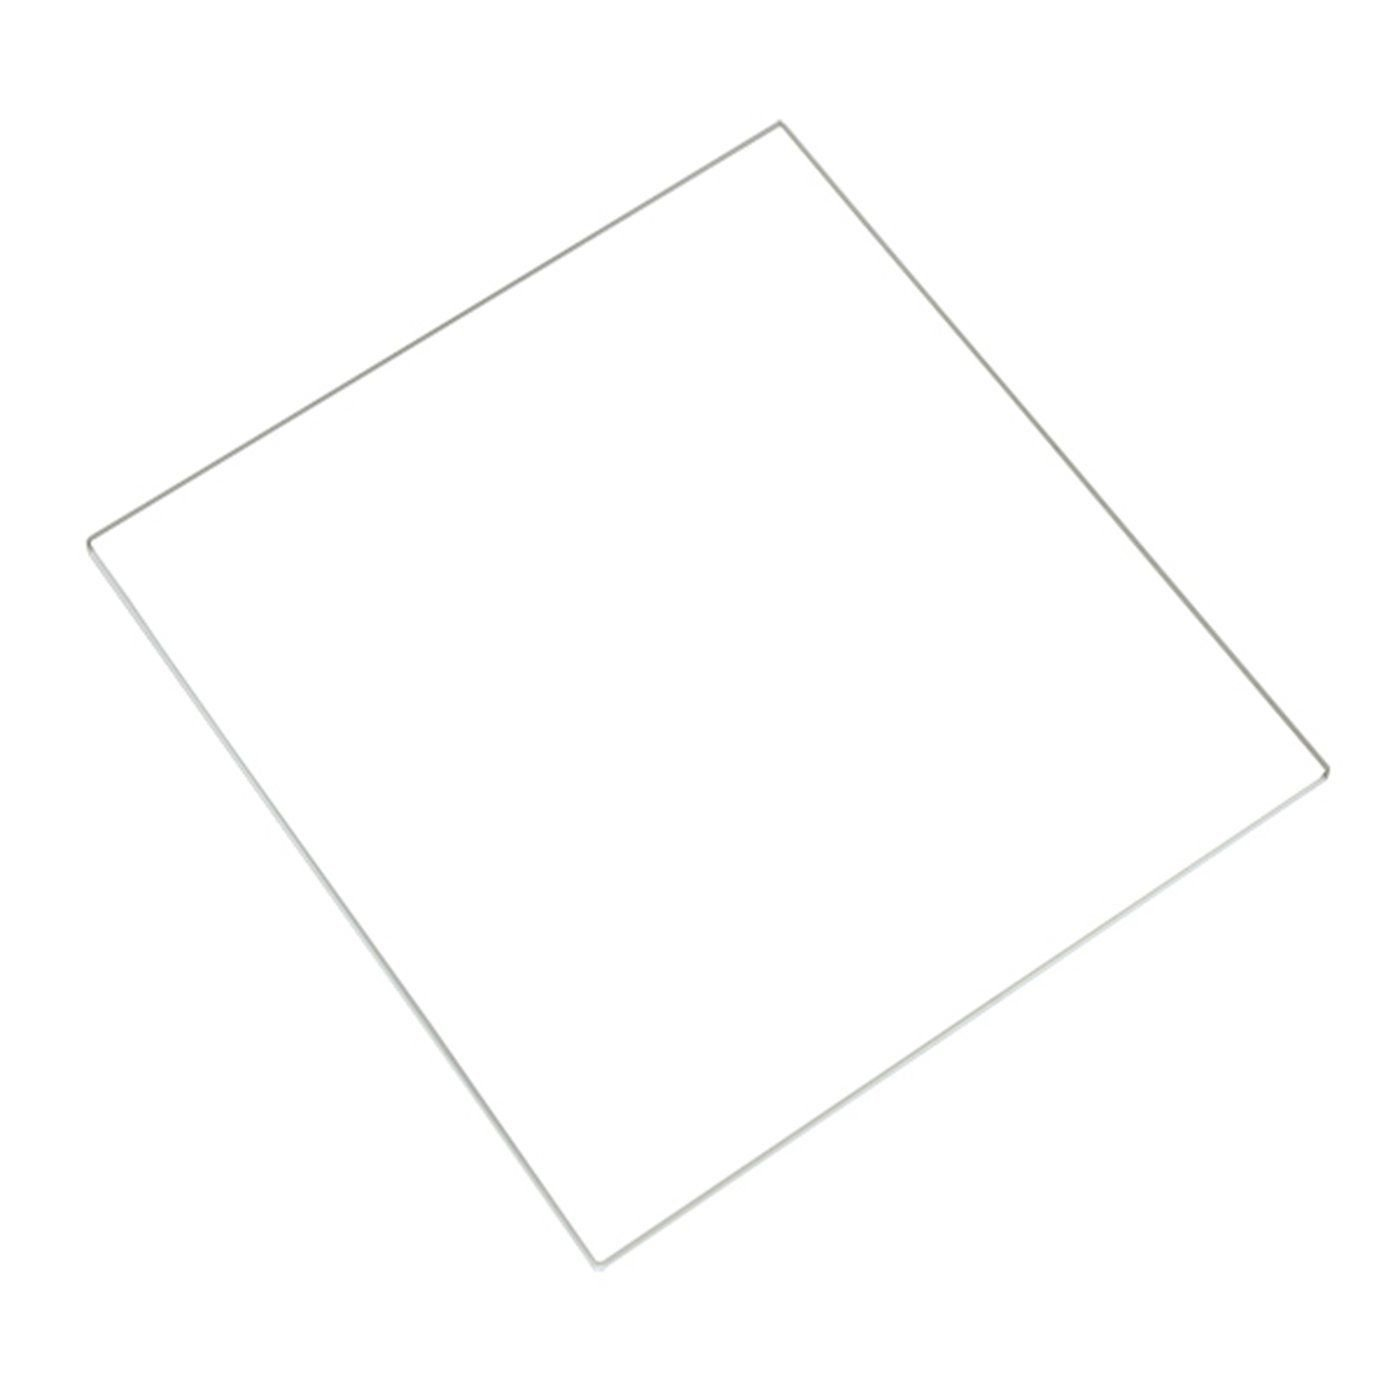 120x120x3mm Square 120mm x 120mm x 3mm Borosilicate Glass Plate//Bed for Monoprice Select Mini 3D Printer